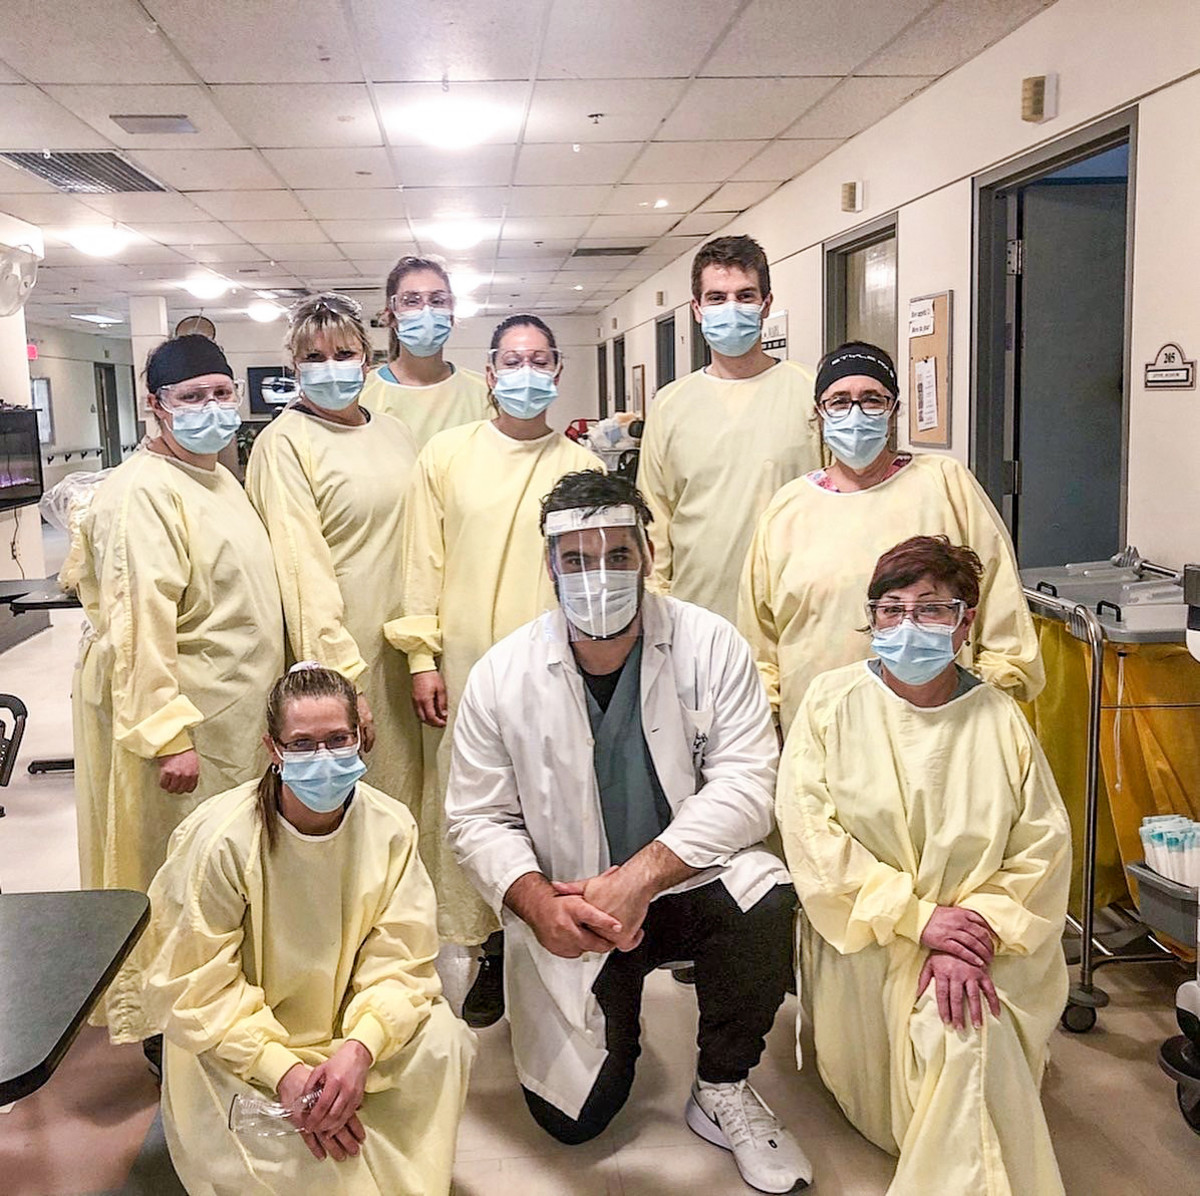 Laurent Duvernay-Tardif and the medical team he is working with